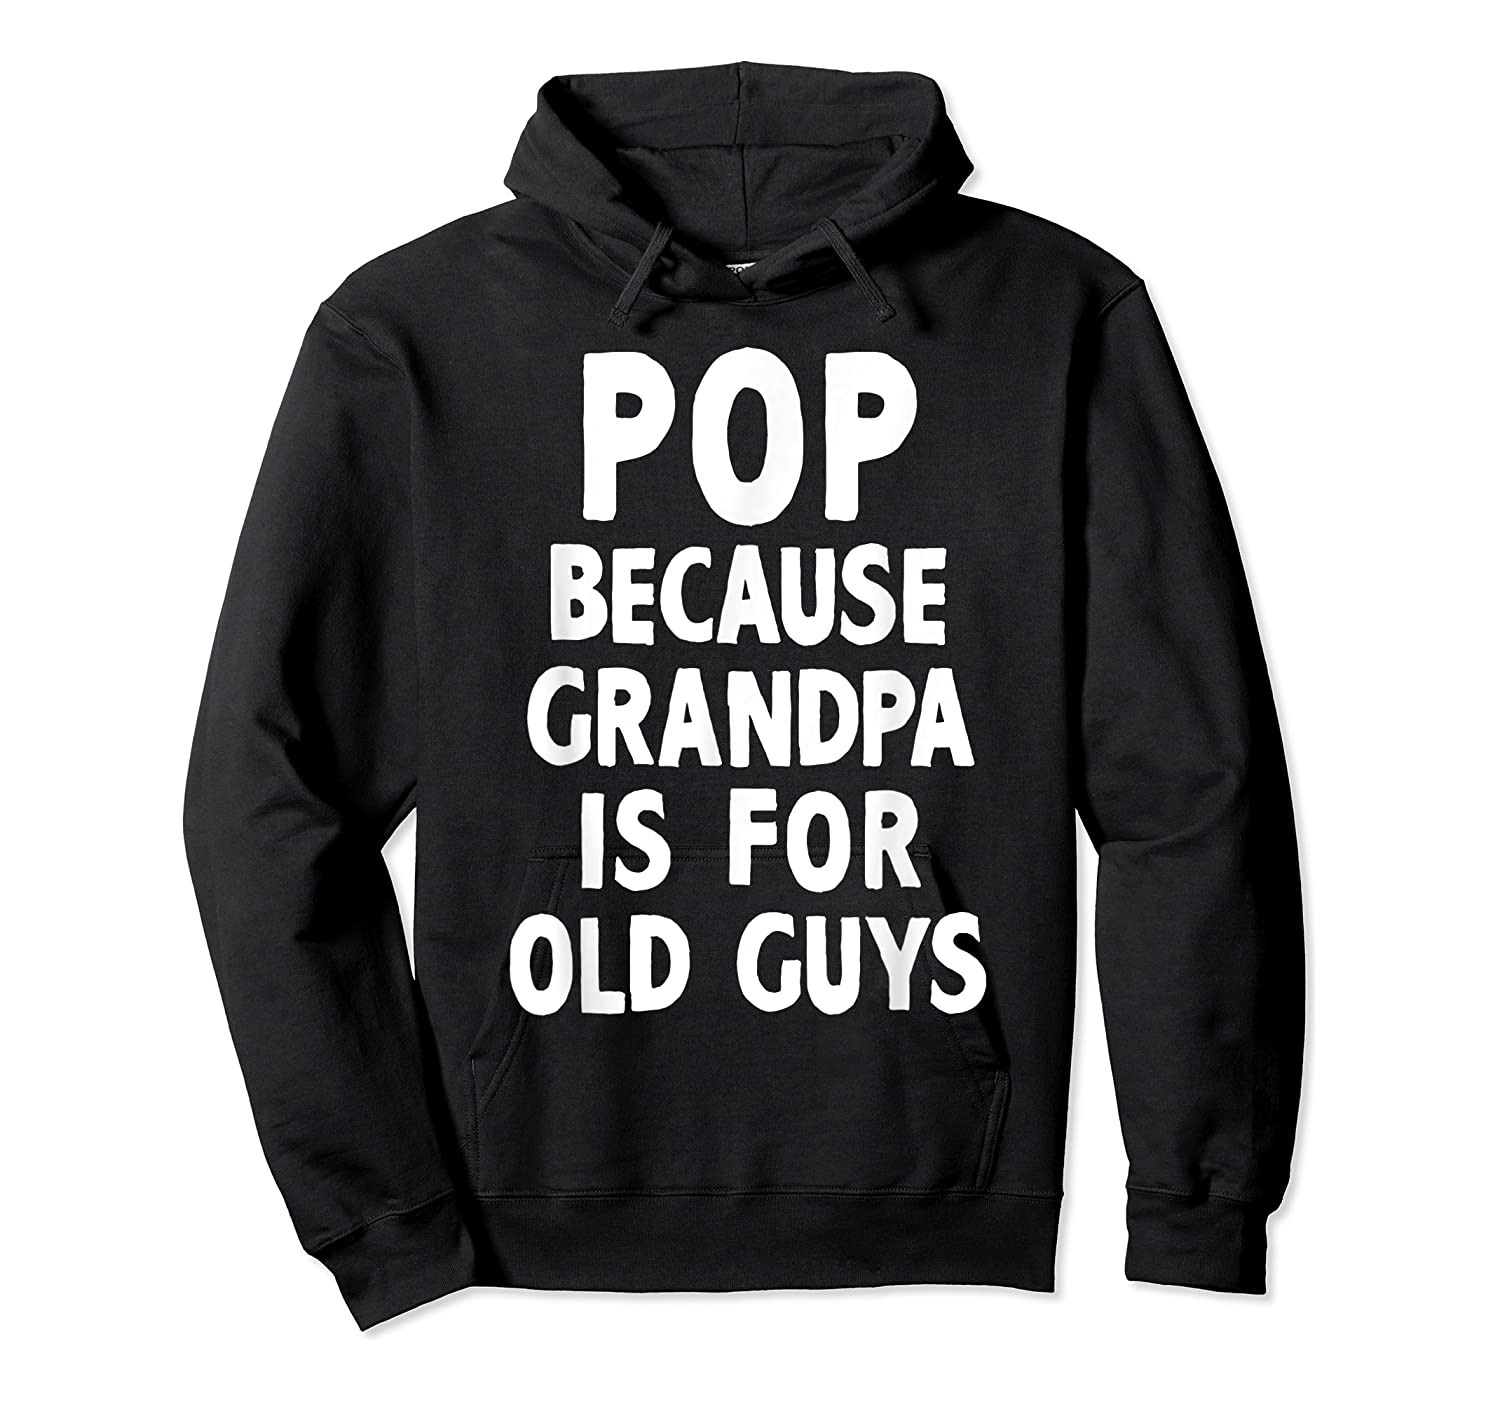 Pop Because Grandpa Is For Old Guys Funny Gift T-shirt T-shirt Unisex Pullover Hoodie